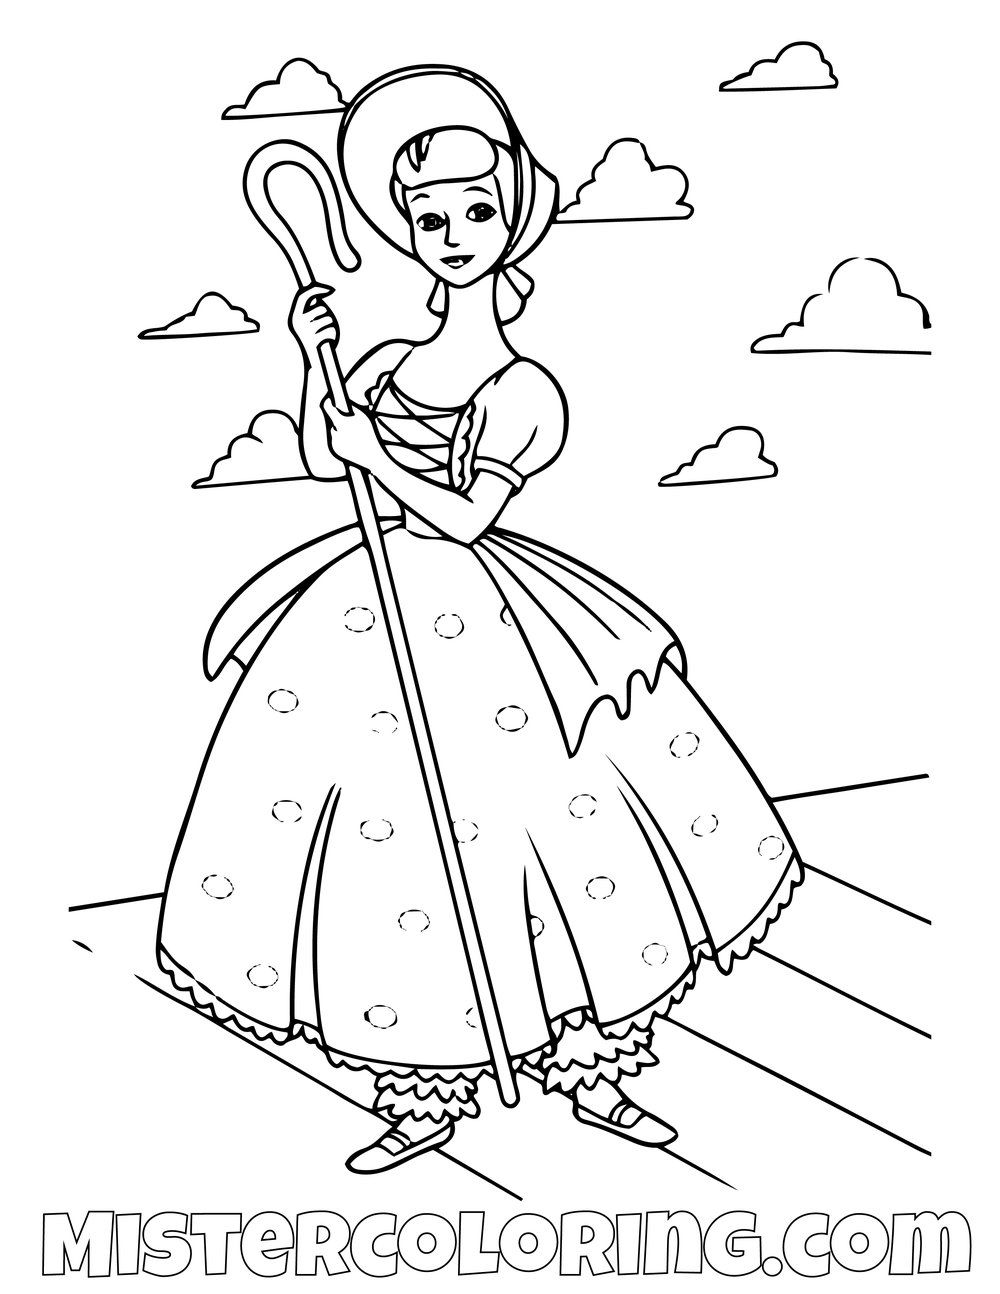 Little Bo Peep Toy Story Coloring Page Fiesta, Maestros